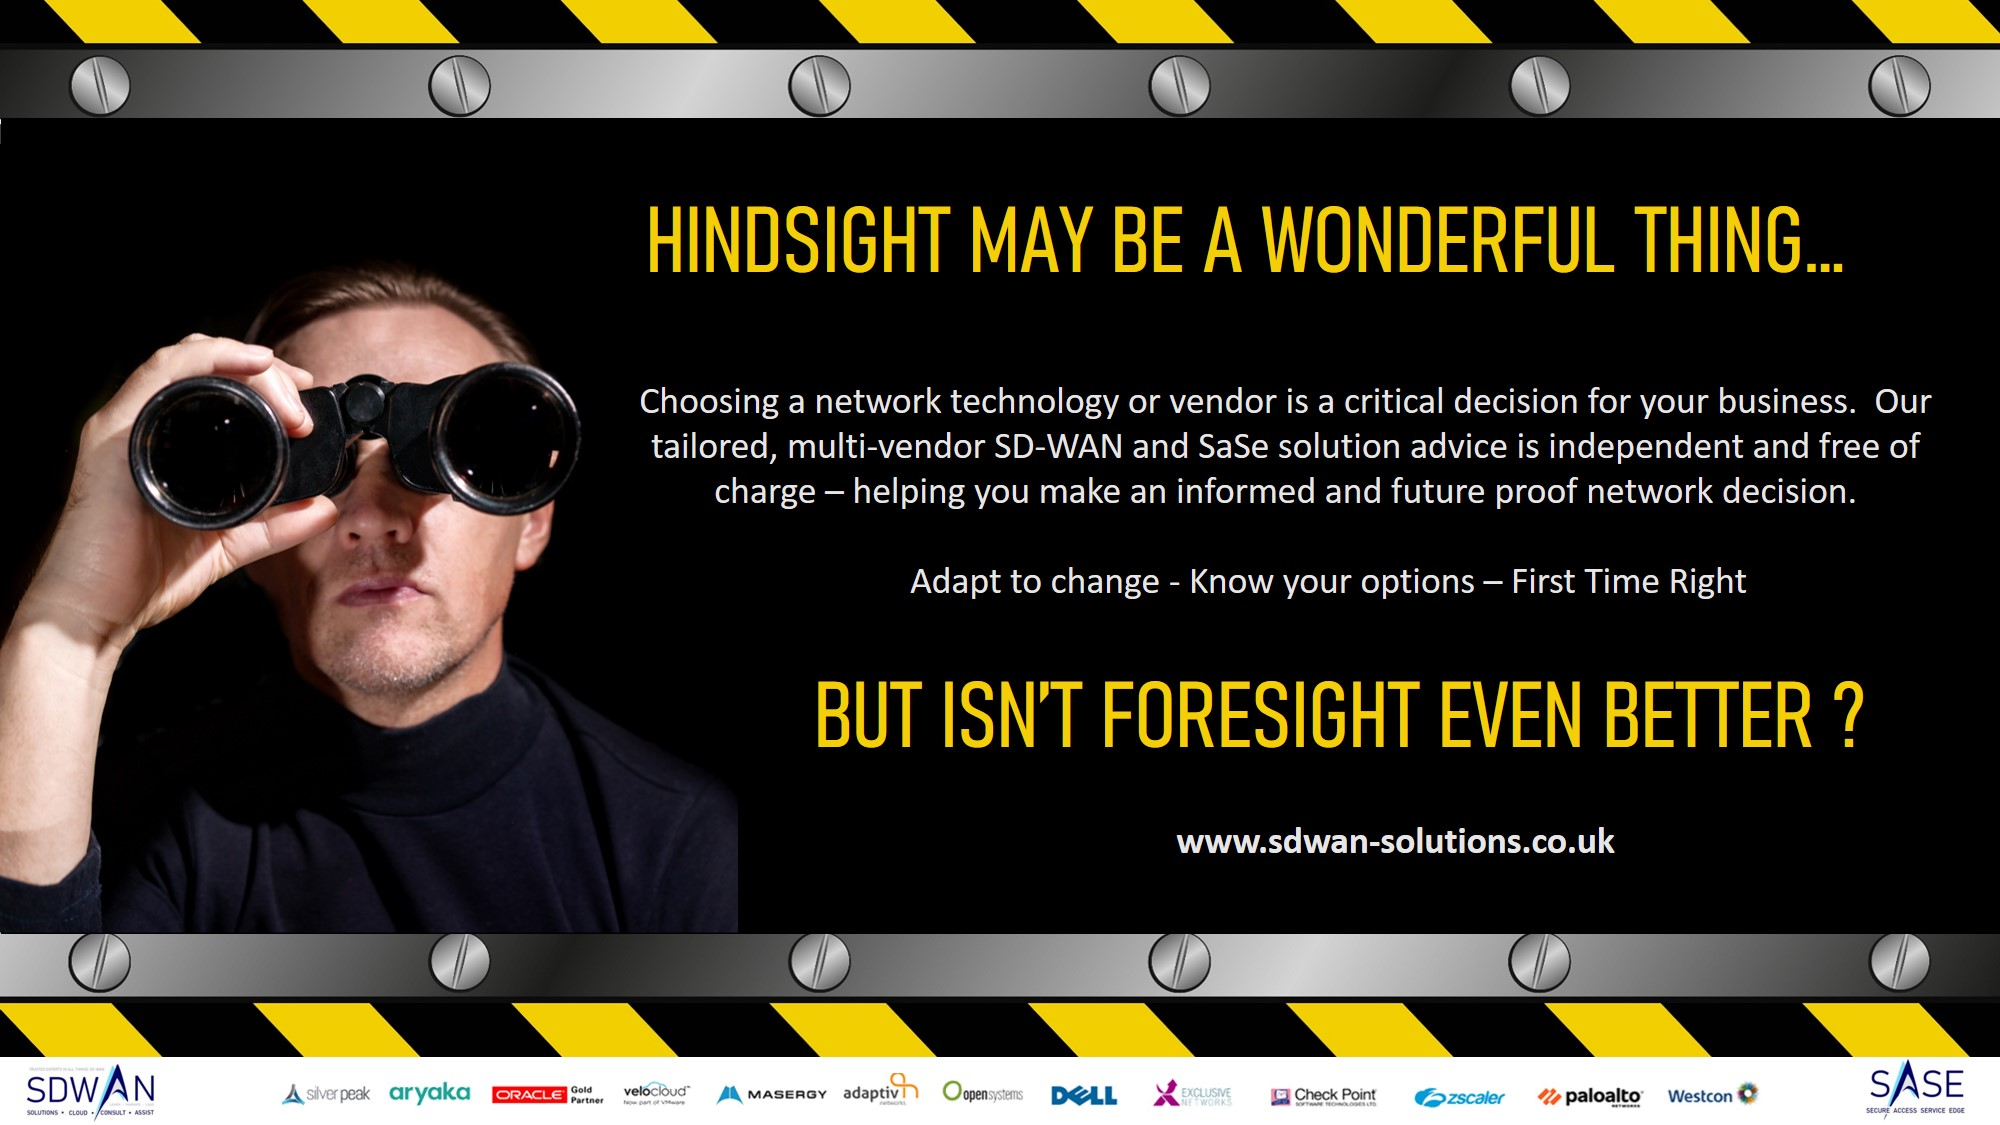 Hindsight is a wonderful thing but foresight is even better when it comes to SD-WAN or SaSe